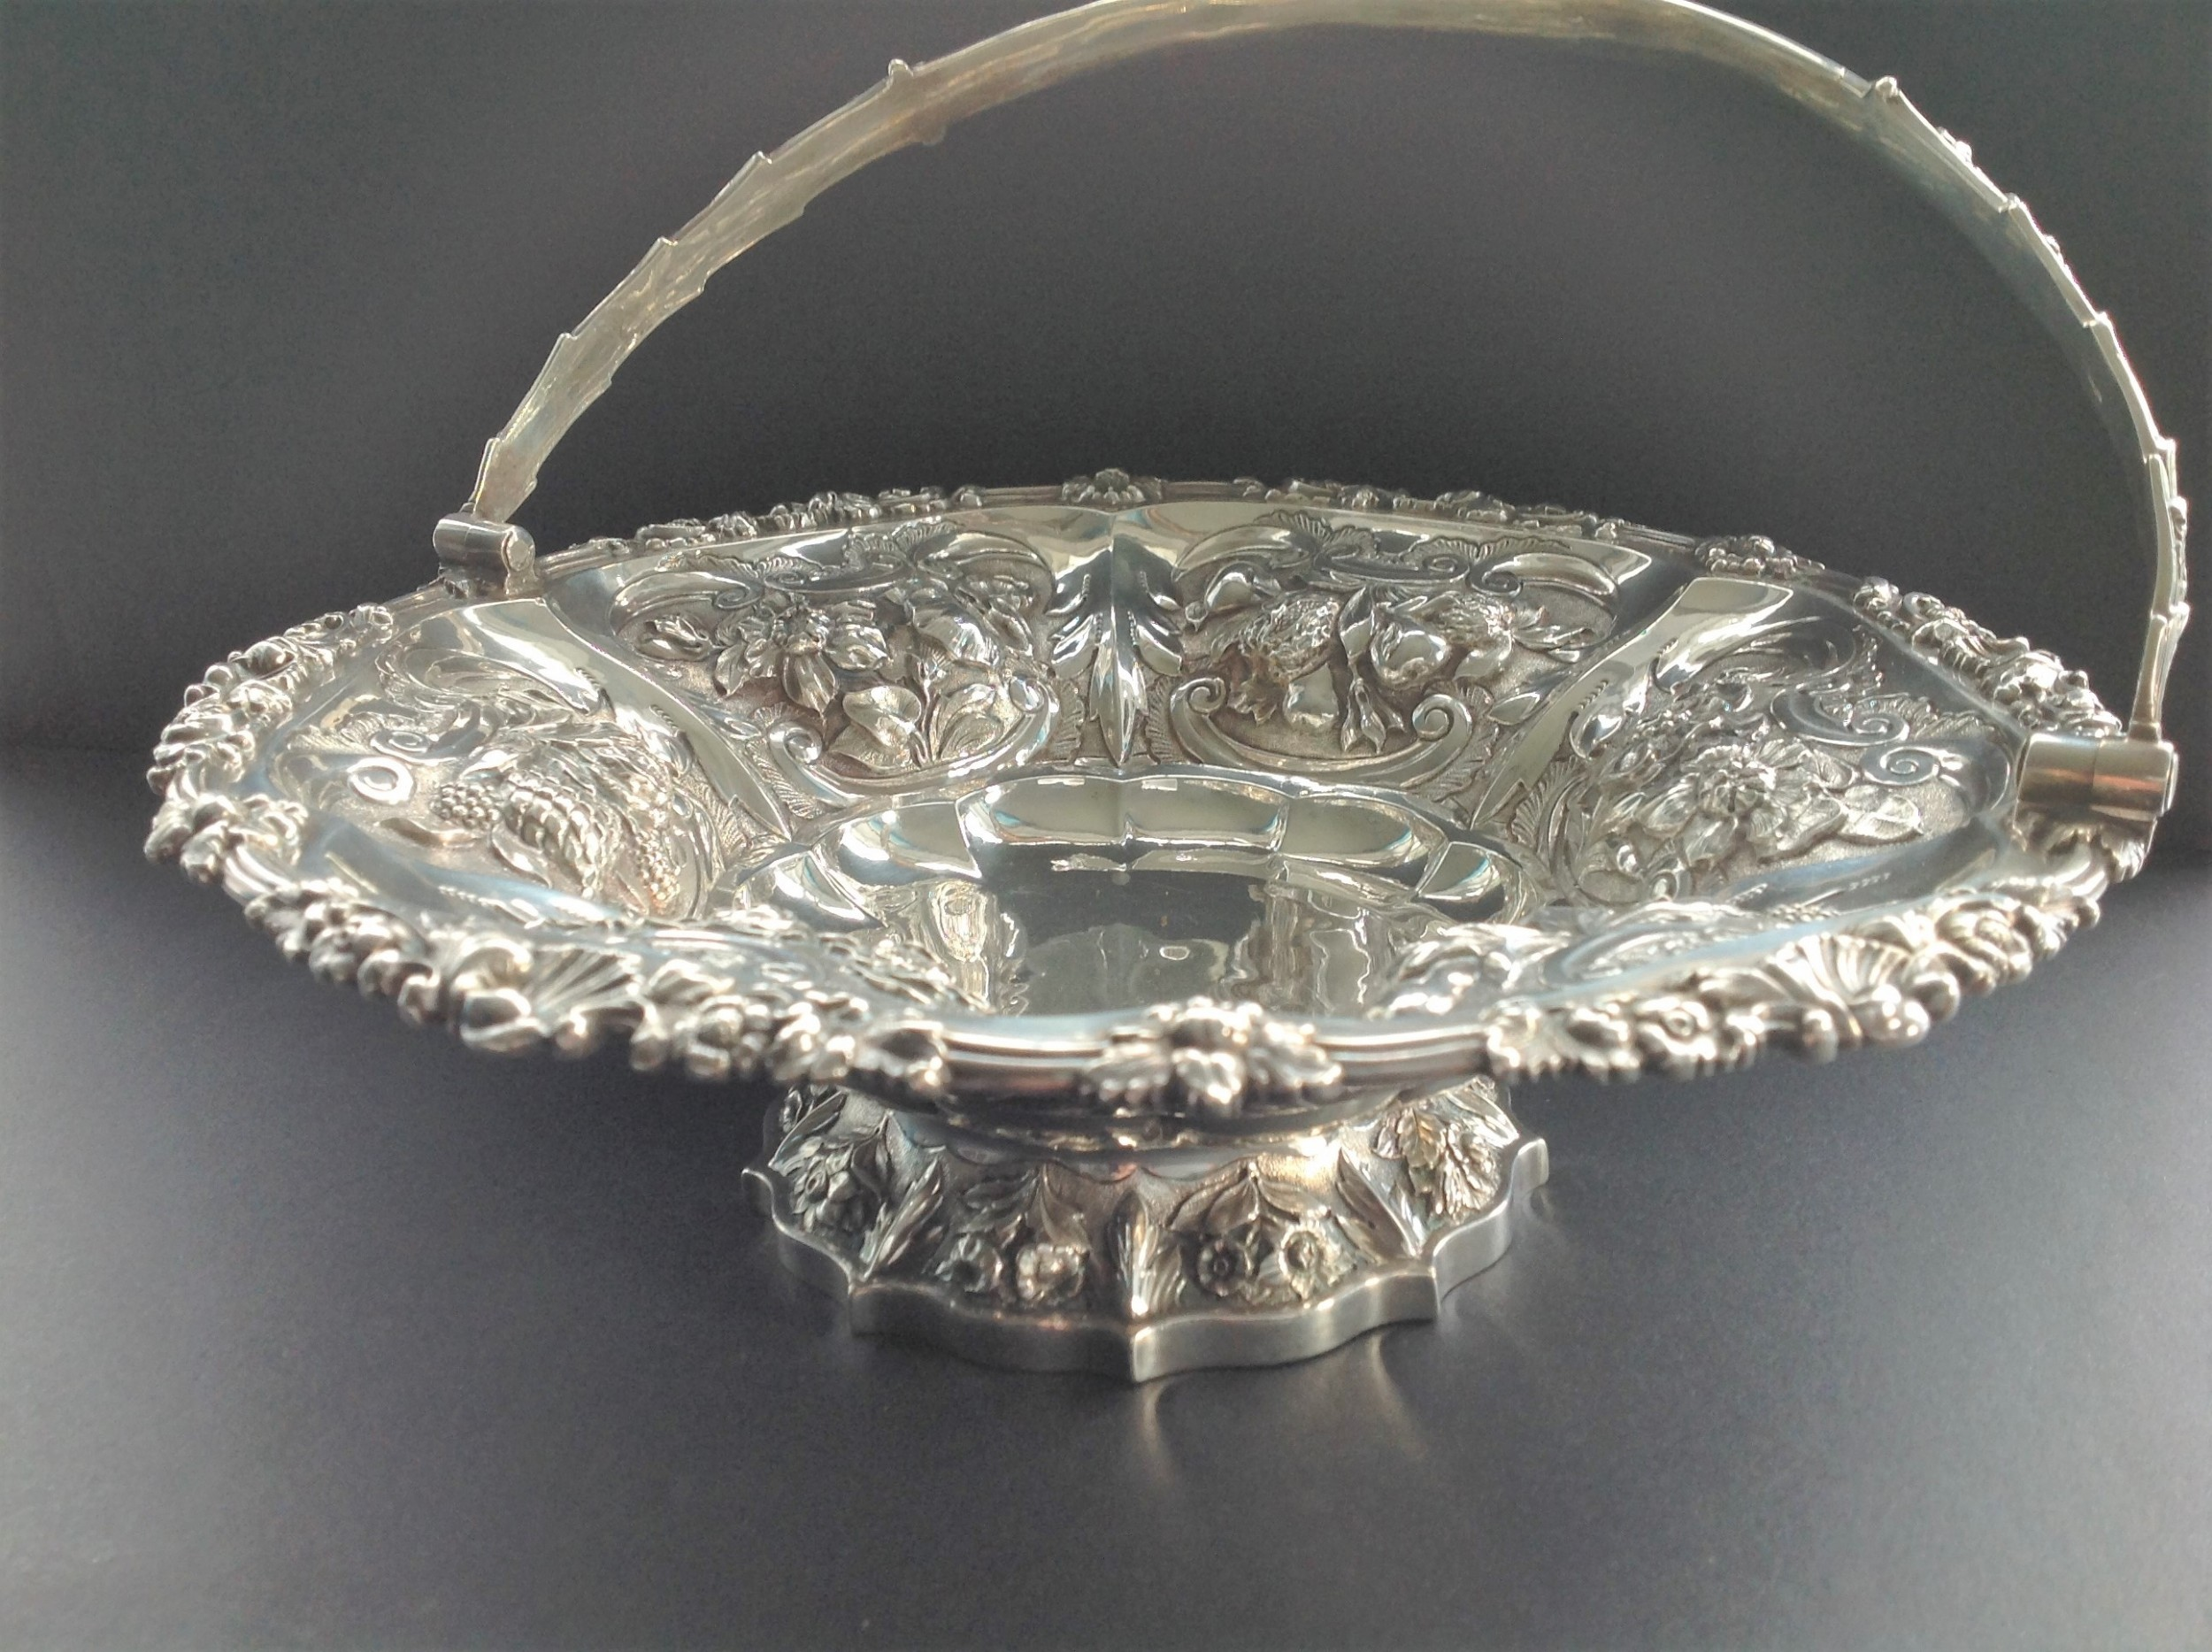 stunning antique georgian silver basket 1826 emes barnard